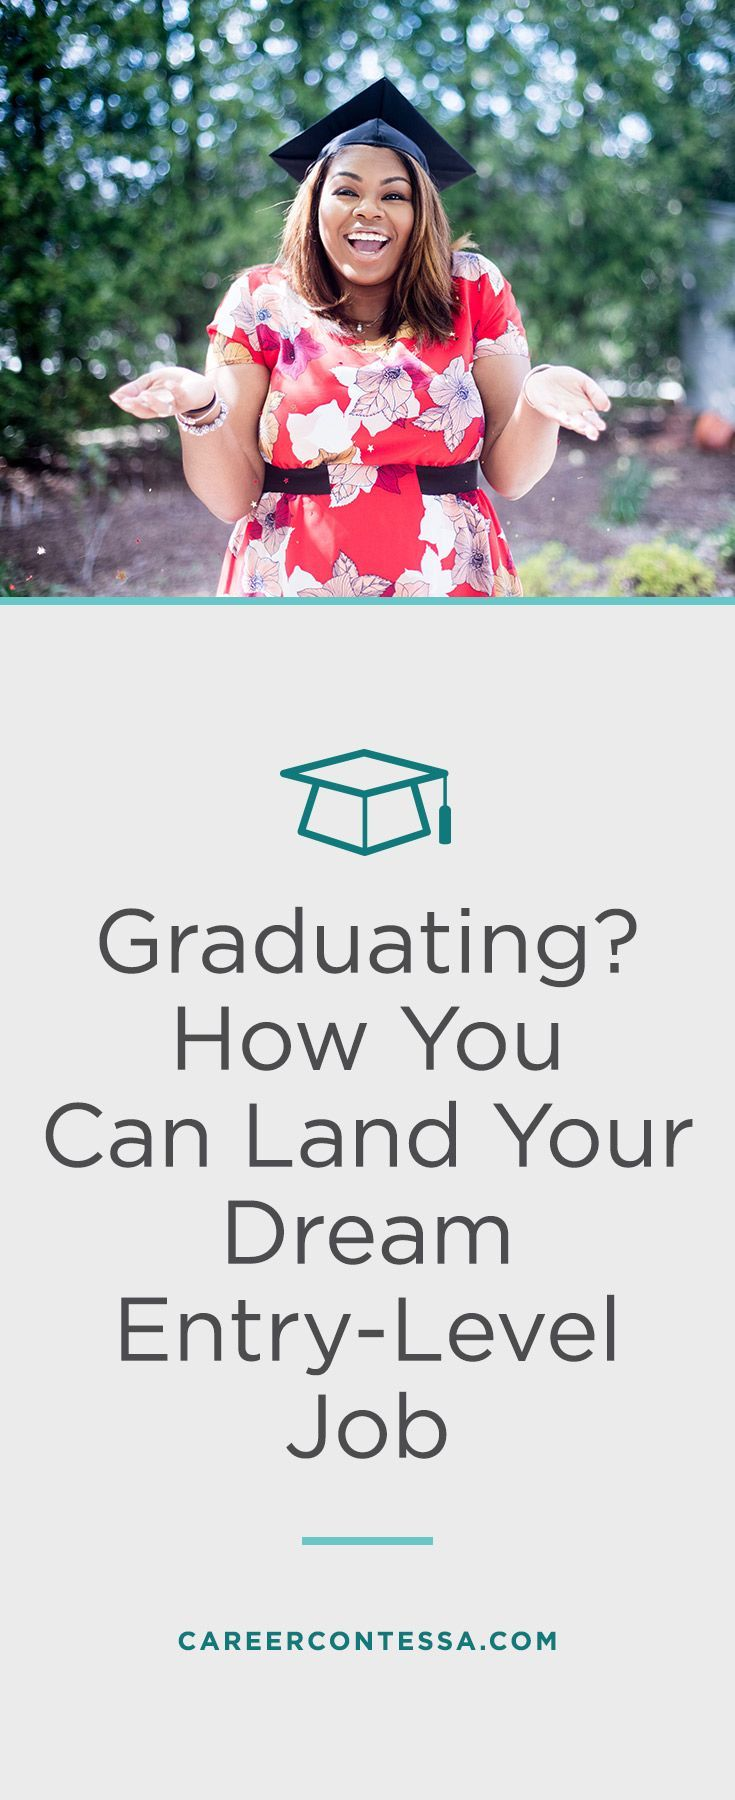 How a New Grad Can Find That First EntryLevel Job Job